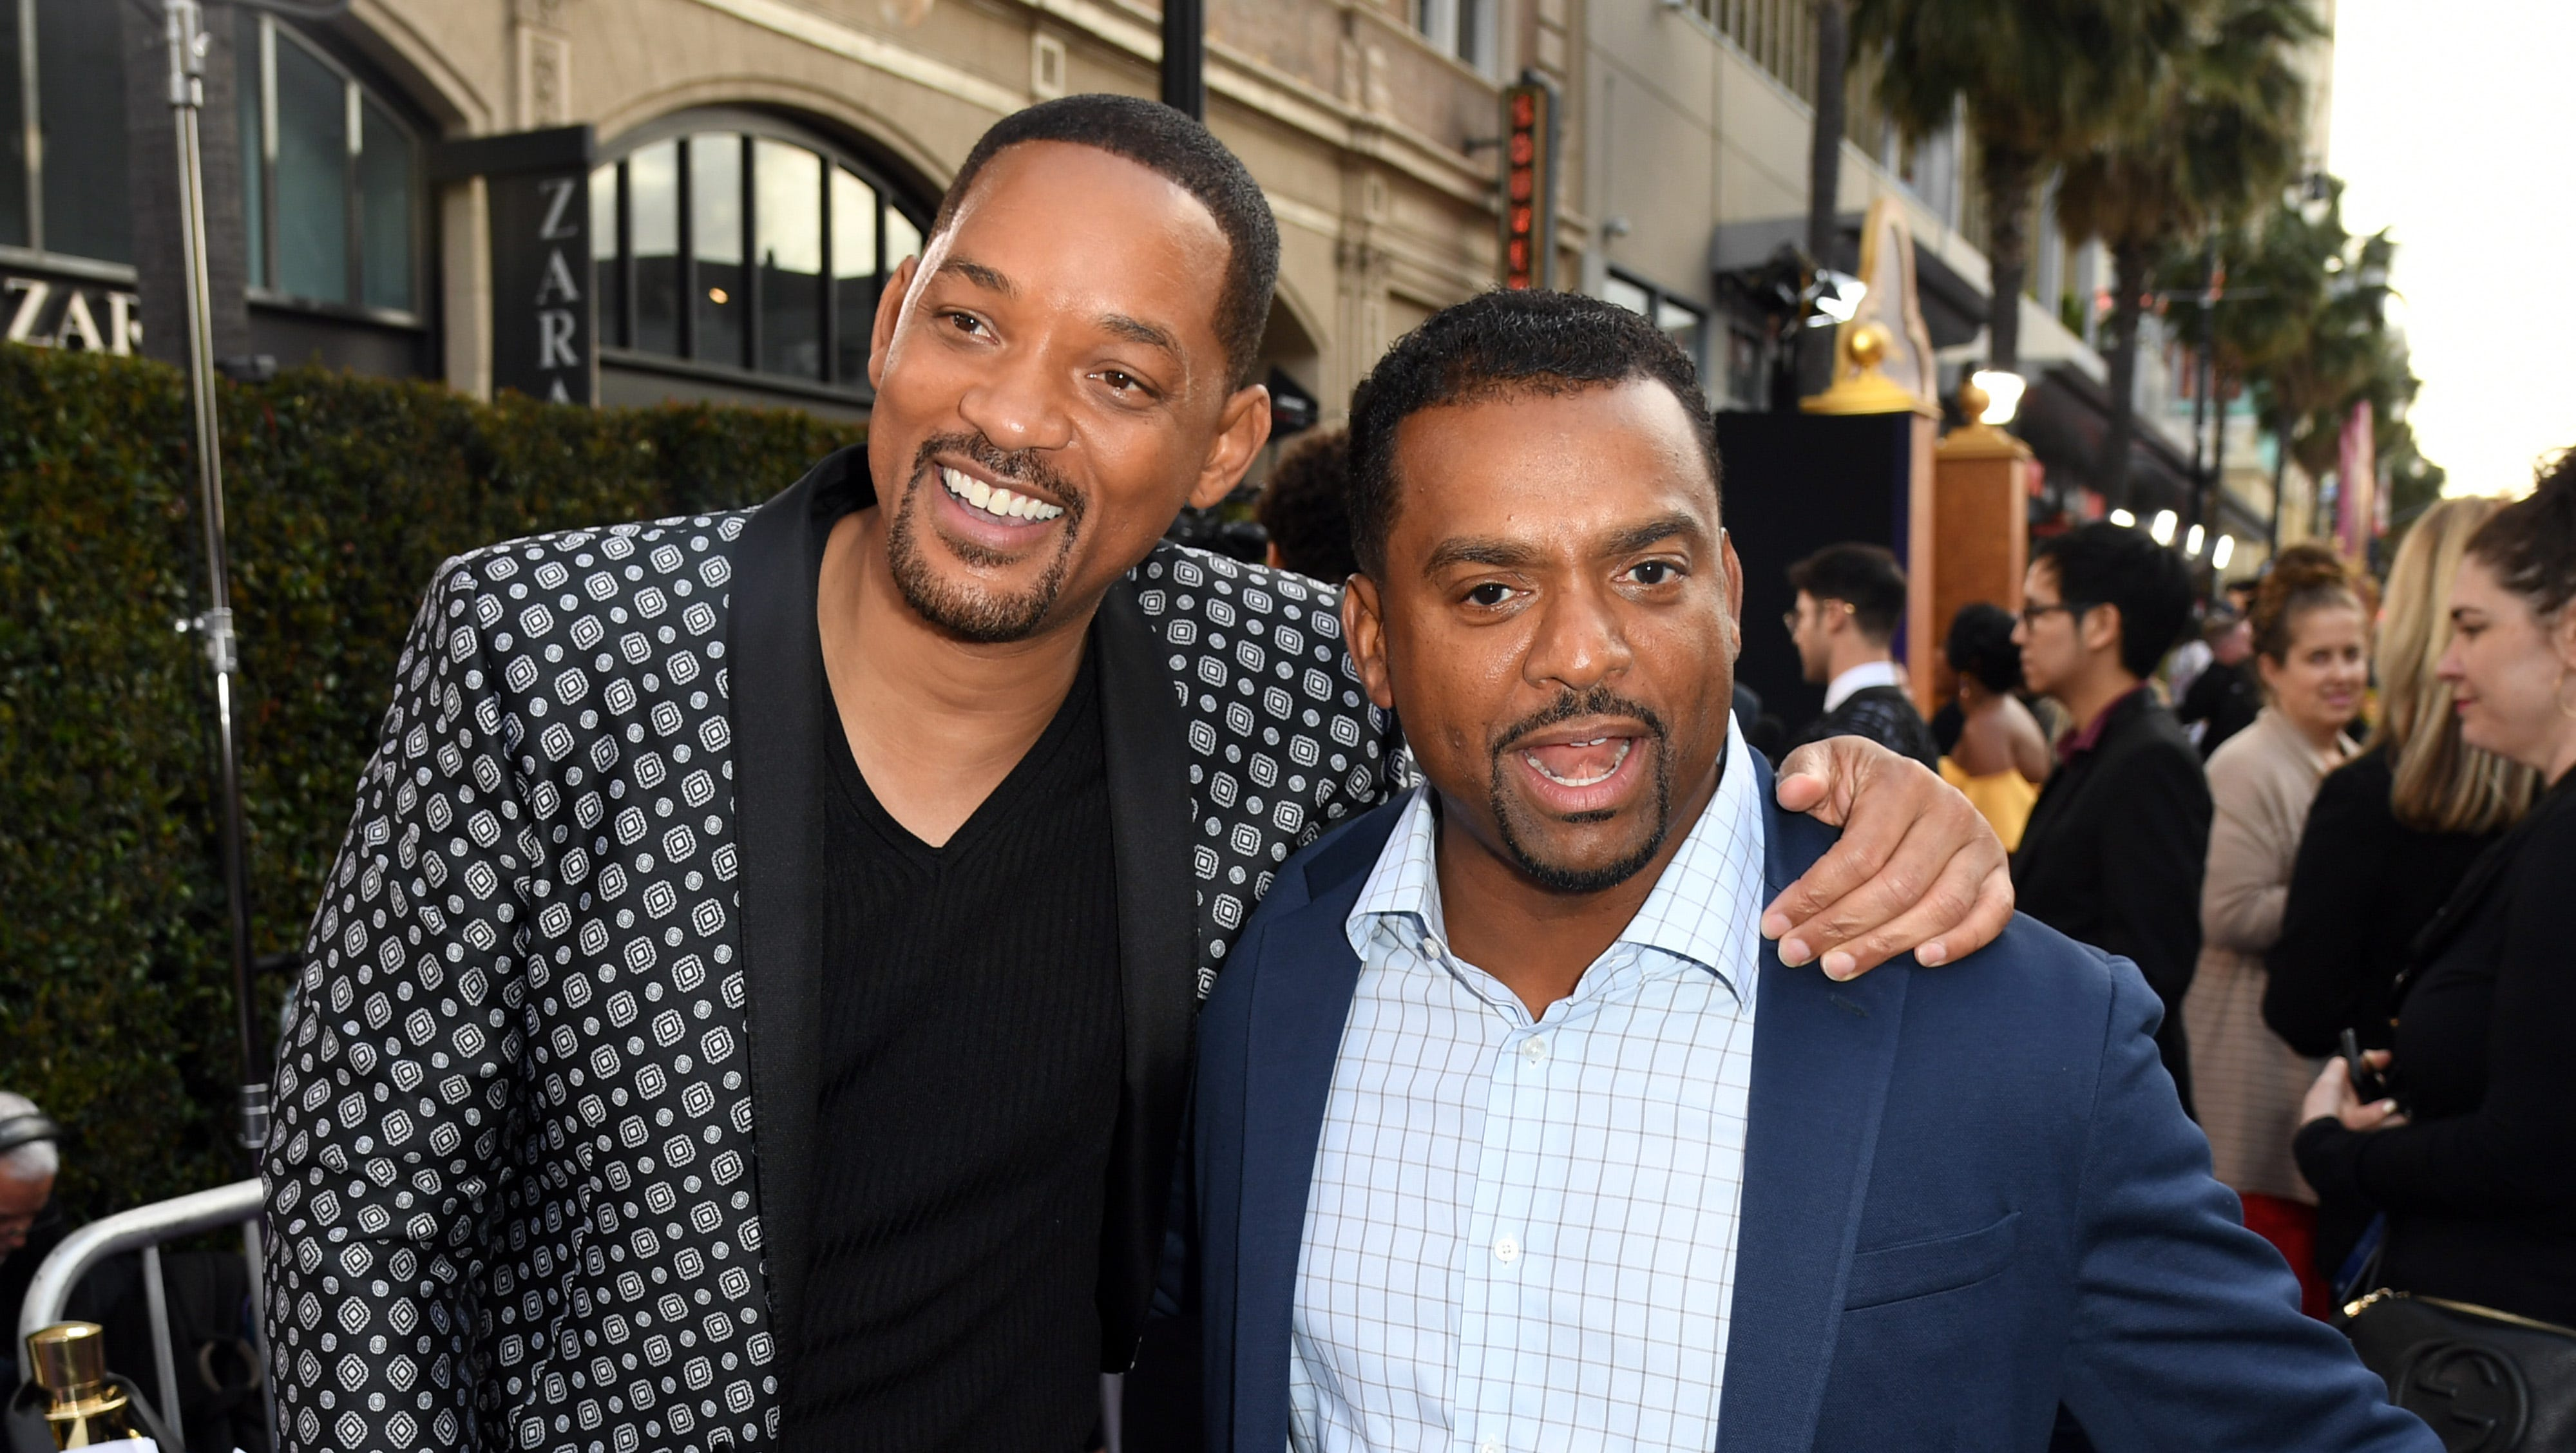 """LOS ANGELES, CALIFORNIA - MAY 21: Will Smith and Alfonso Ribeiro attends the premiere of Disney's """"Aladdin"""" at El Capitan Theatre on May 21, 2019 in Los Angeles, California. (Photo by Kevin Winter/Getty Images) ORG XMIT: 775339010 ORIG FILE ID: 1150847401"""